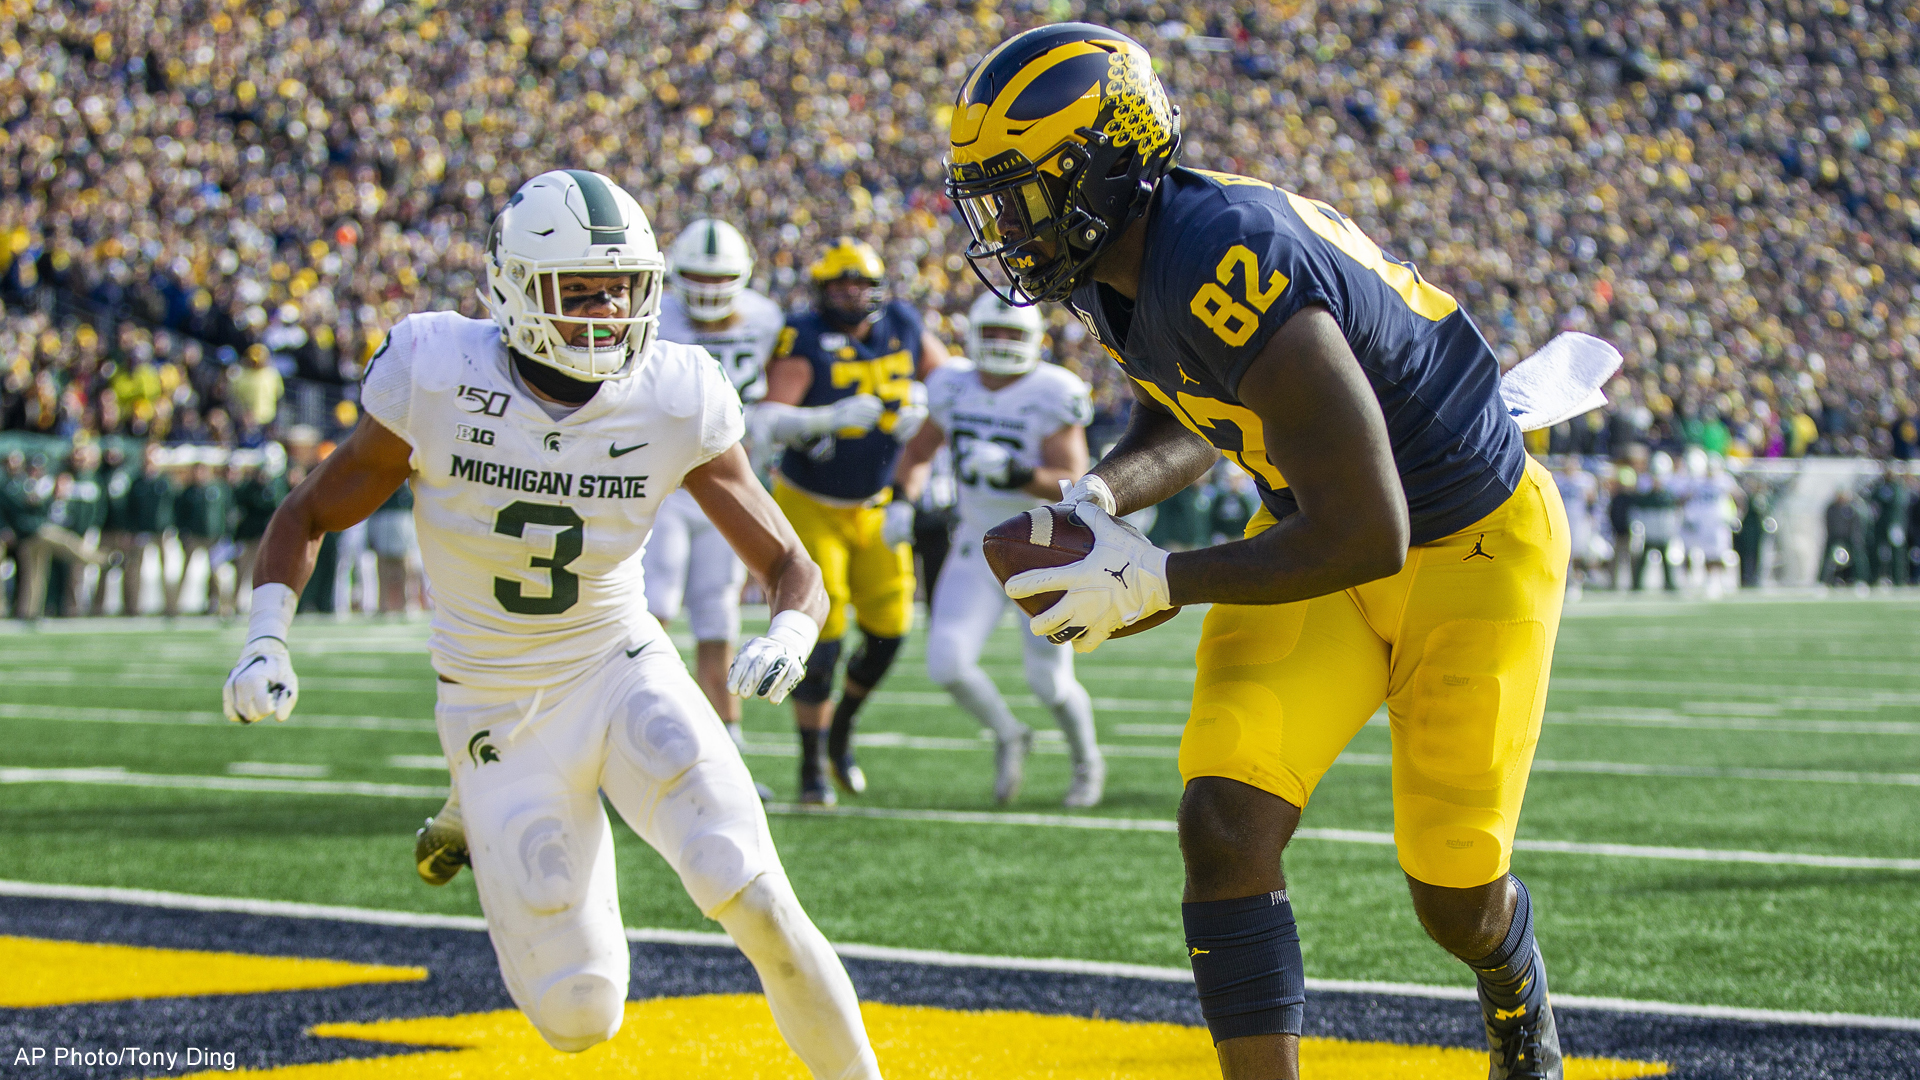 Michigan State Michigan football